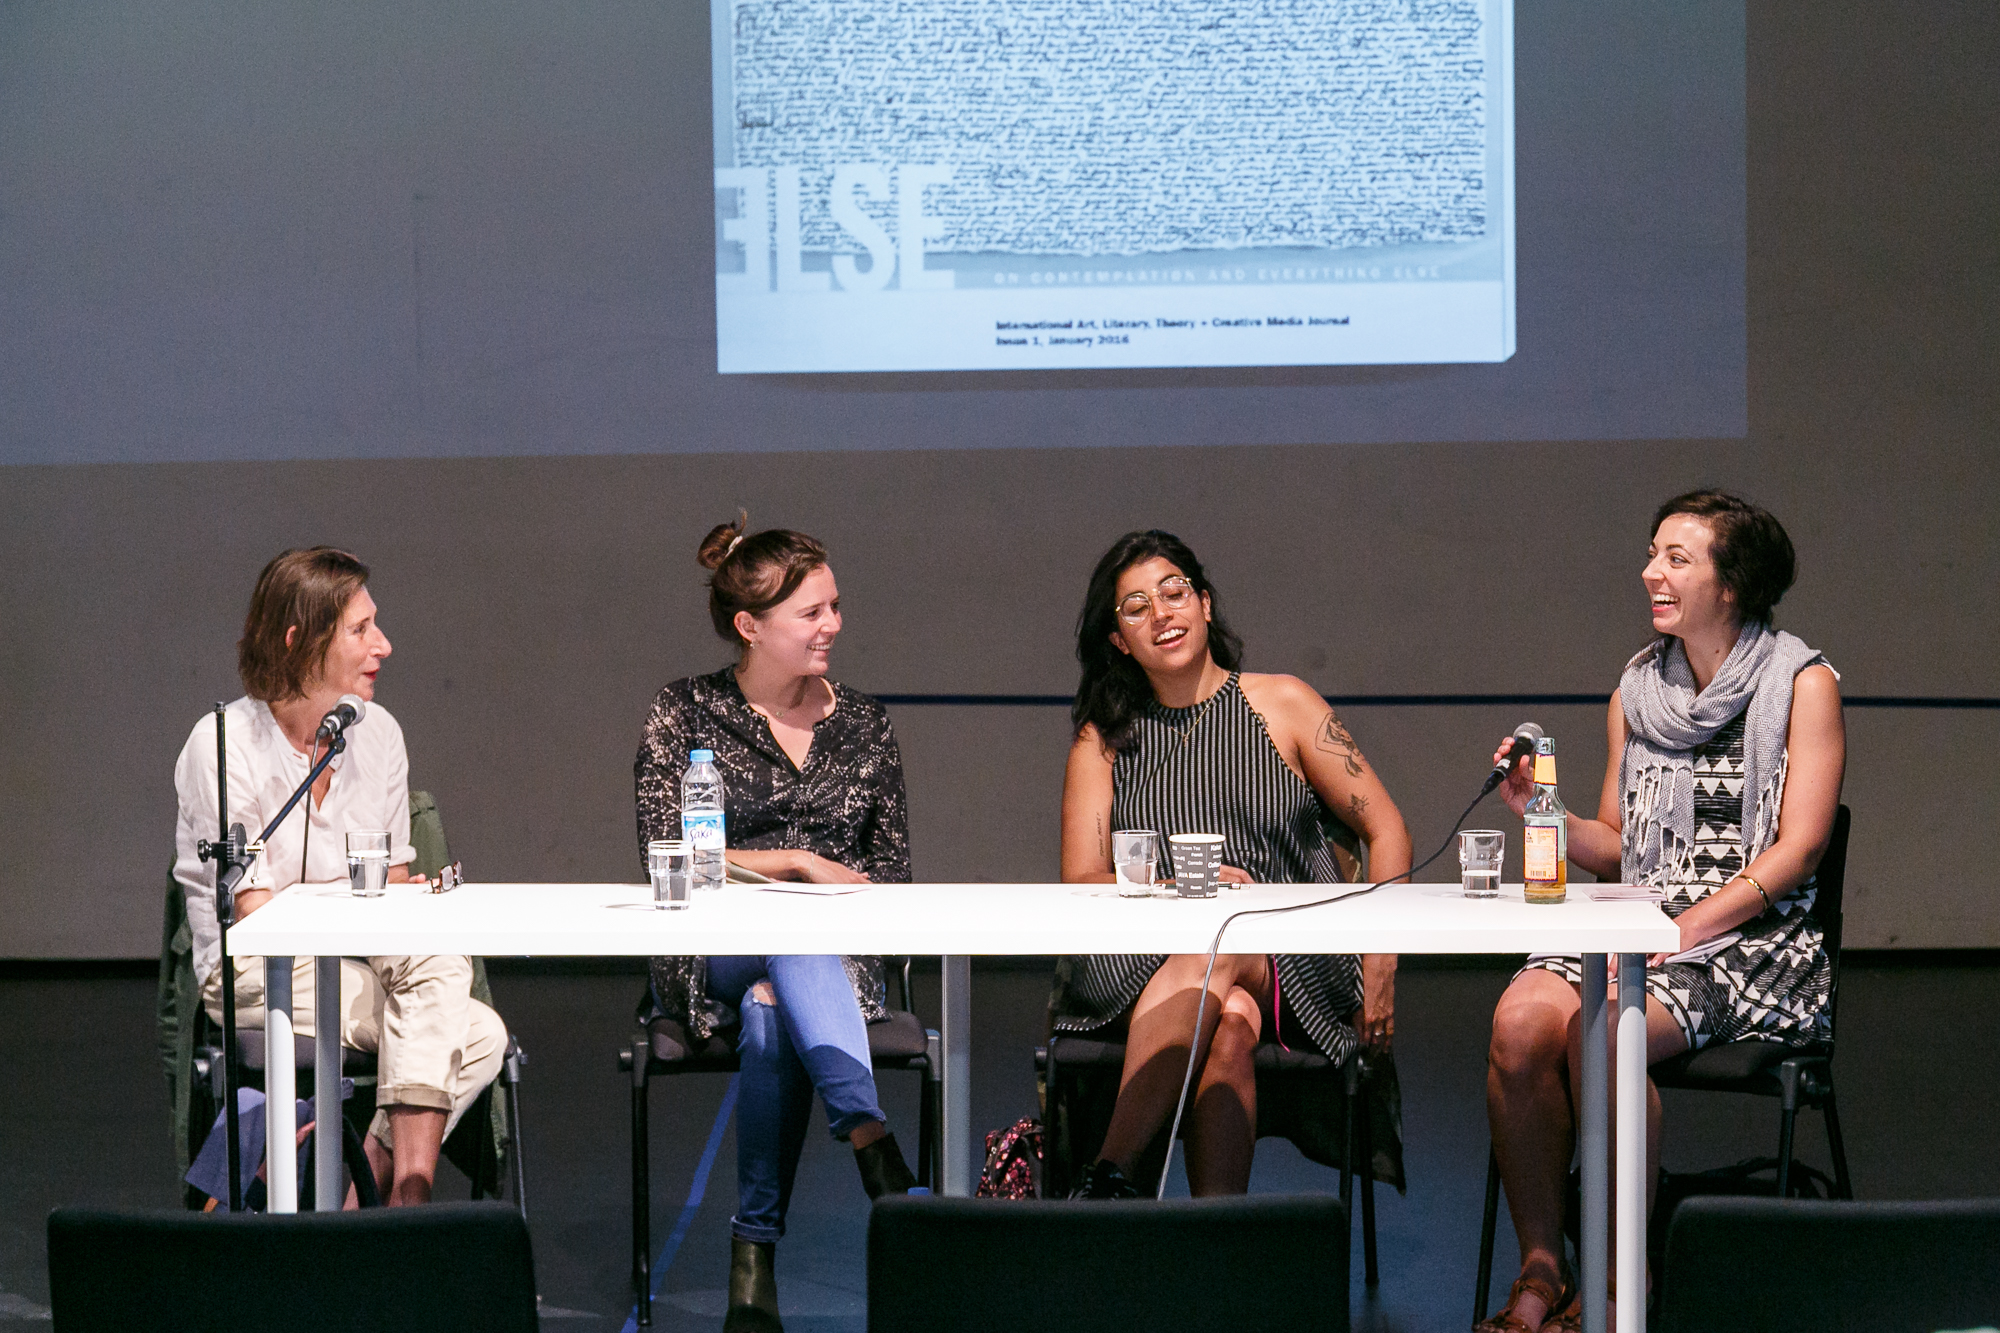 Ruth Novaczek, Rachel Dedman,Gaby Cepeda & Andrea Spaziani, Transart Triennale 2016 Symposium panel discussion: Flux and Becoming: Identity, Self, Love, Other